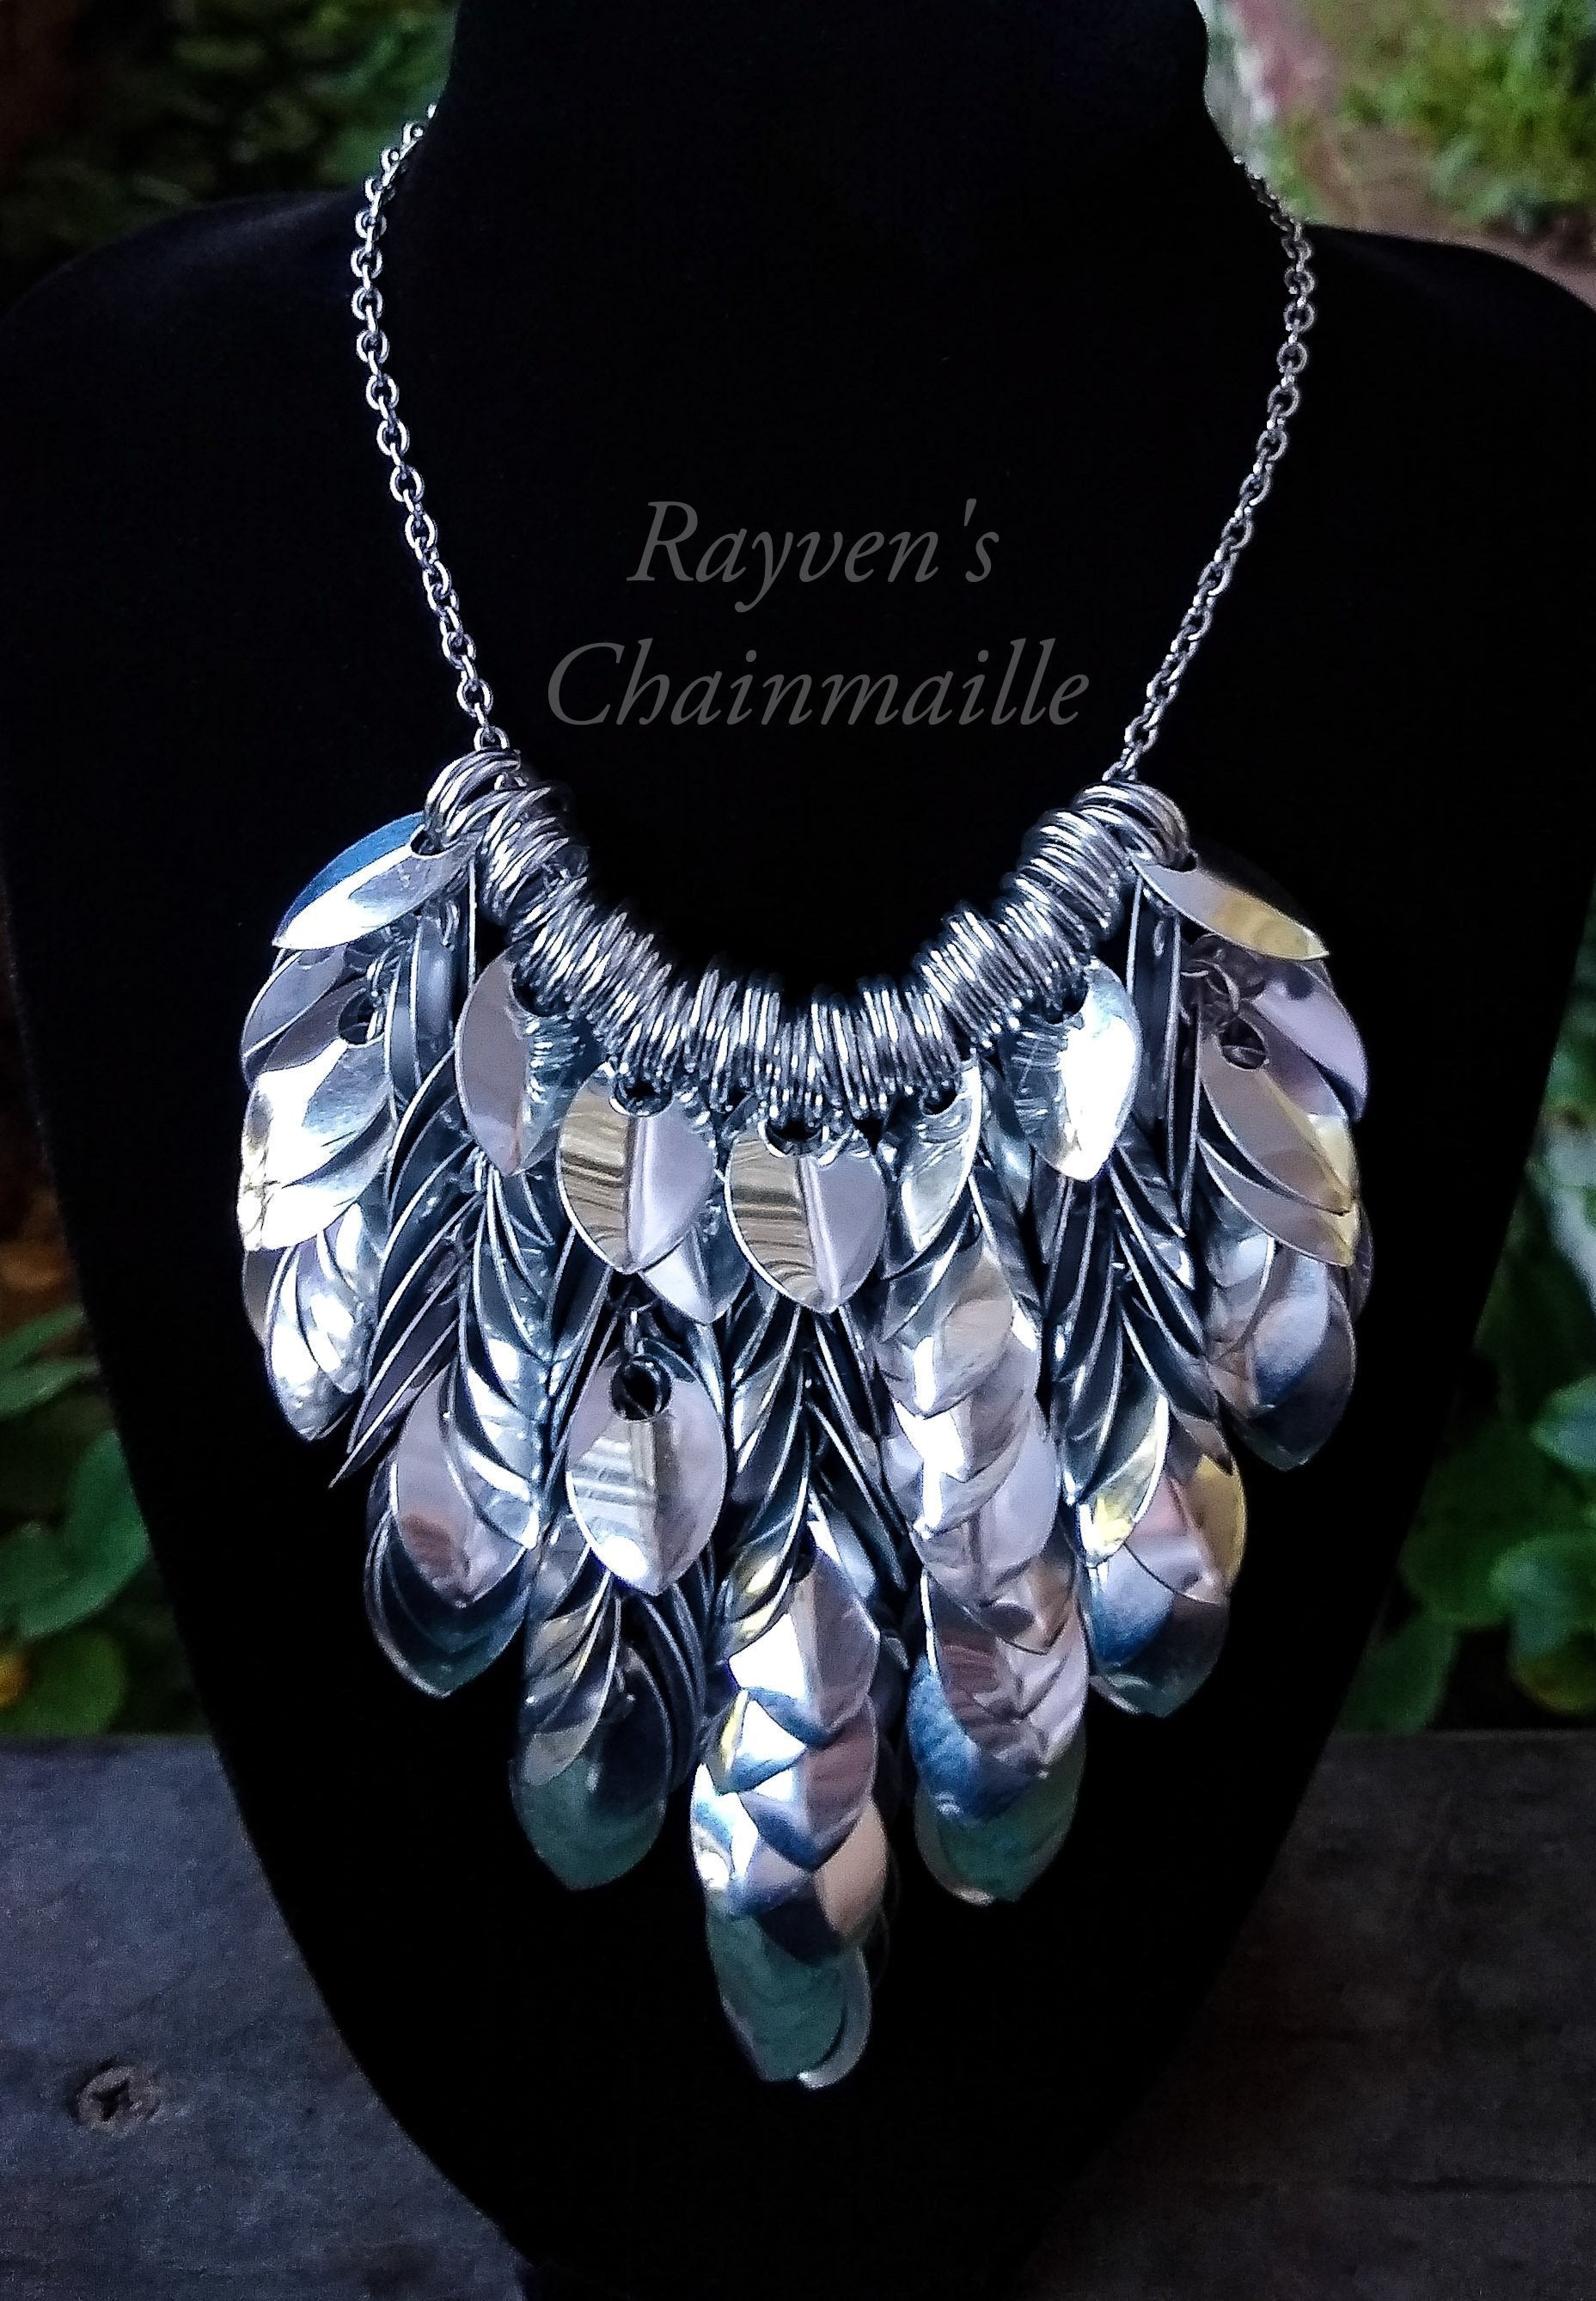 Scalemaille Bib Necklace - Rayven's Chainmaille